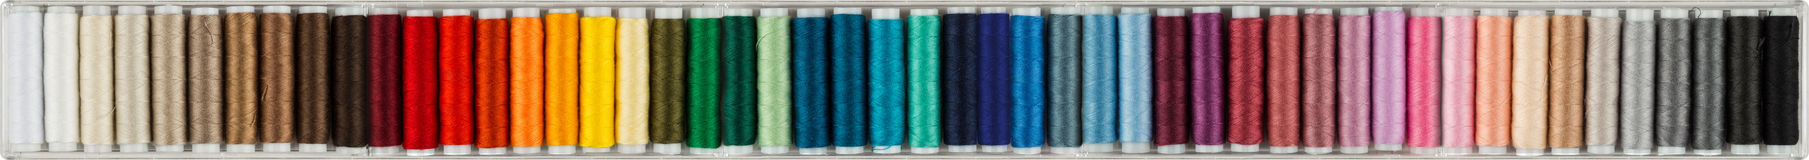 Colorful sewing cottons panorama Stock Image